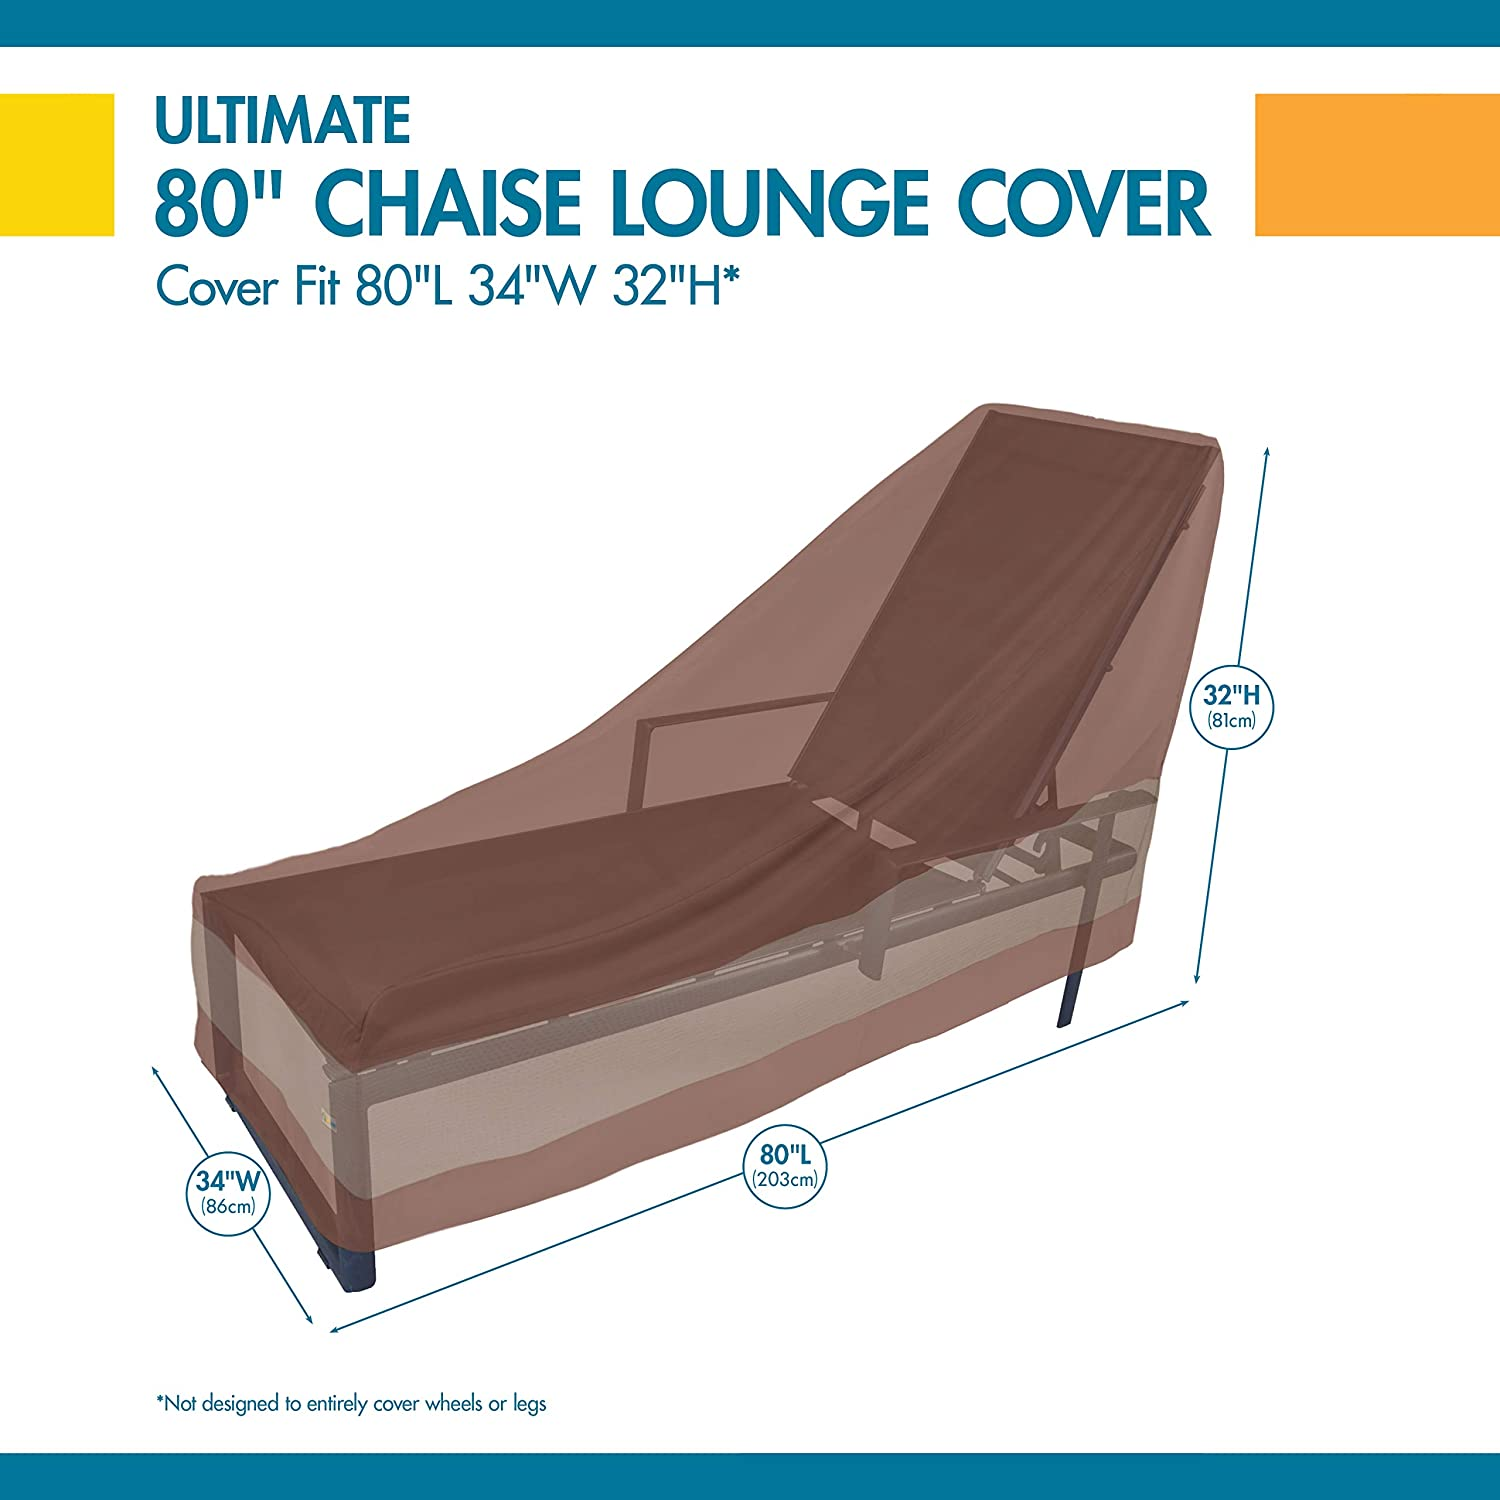 74-Inch Duck Covers Ultimate Patio Chaise Lounge Cover